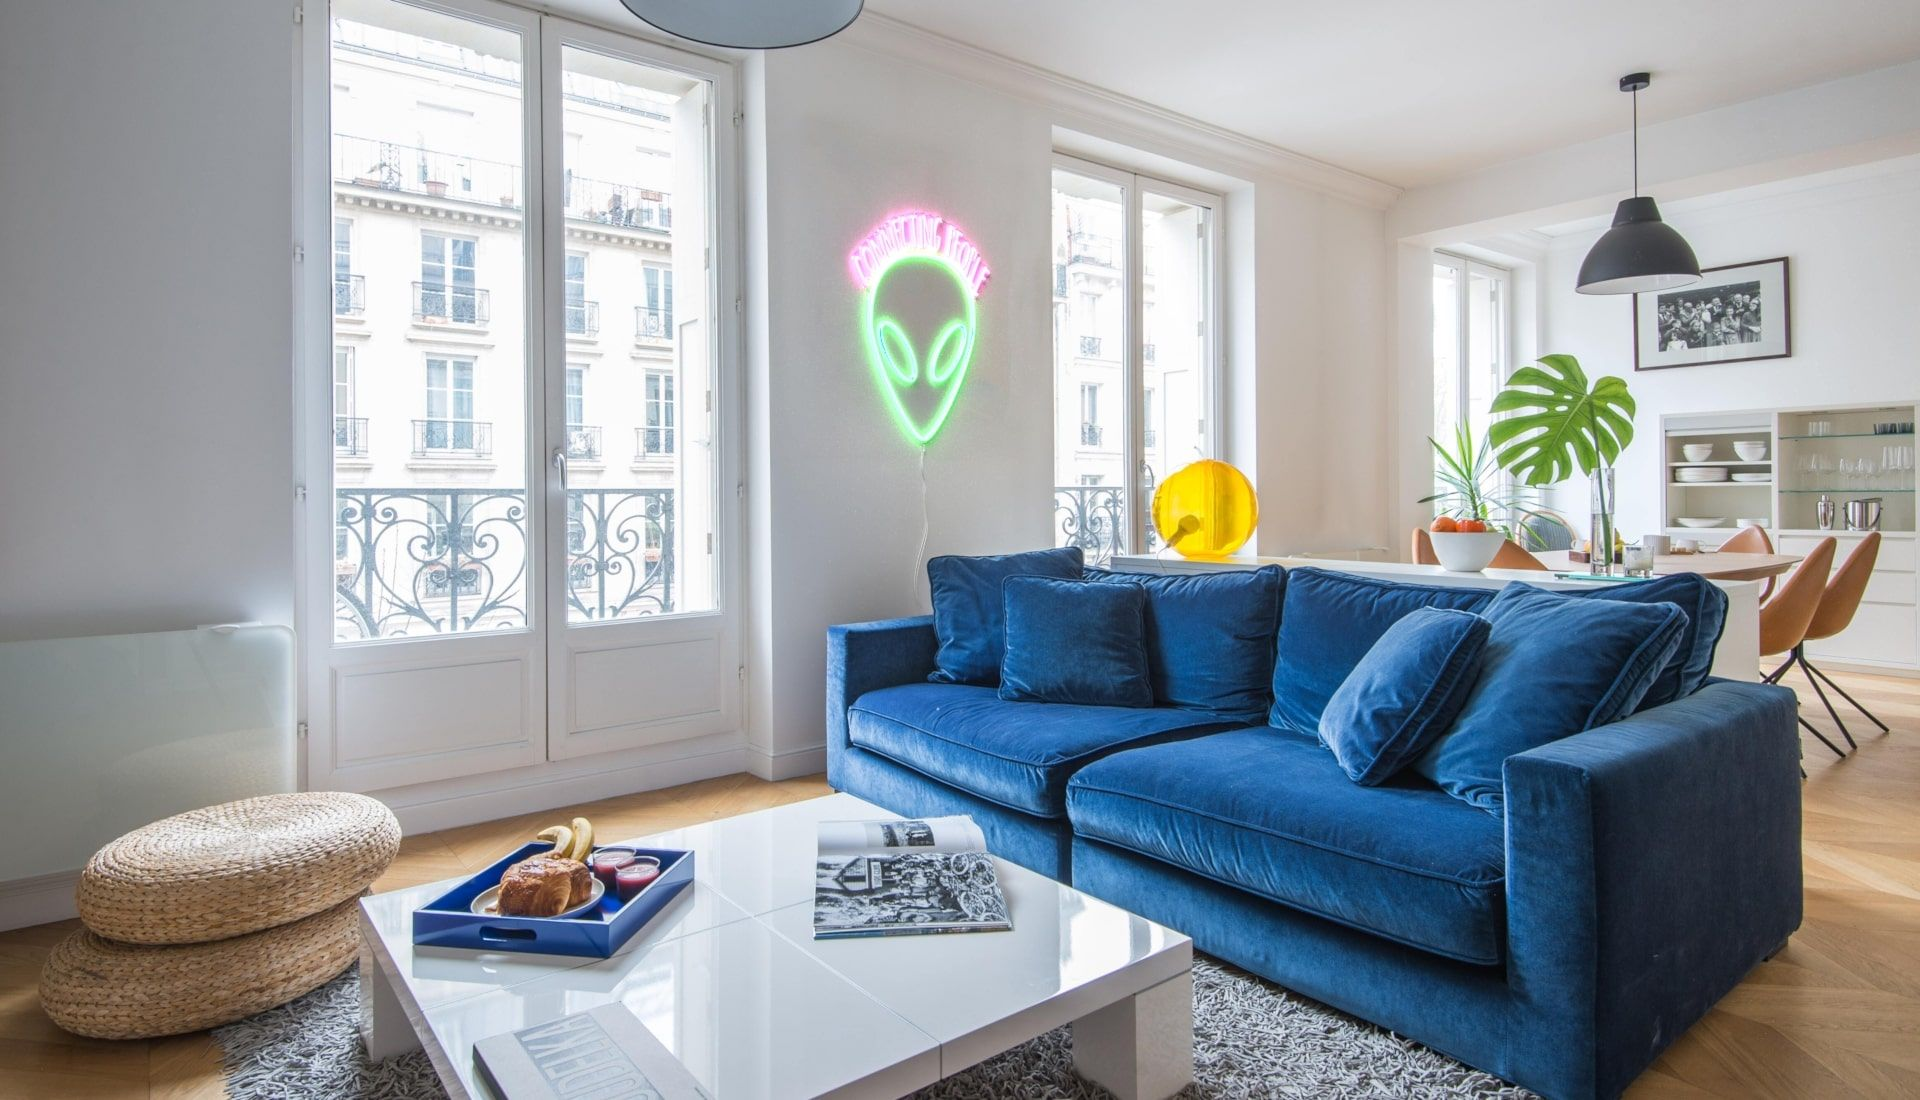 Pin On Yellowpop The Gallery Neon Art #neon #sign #living #room